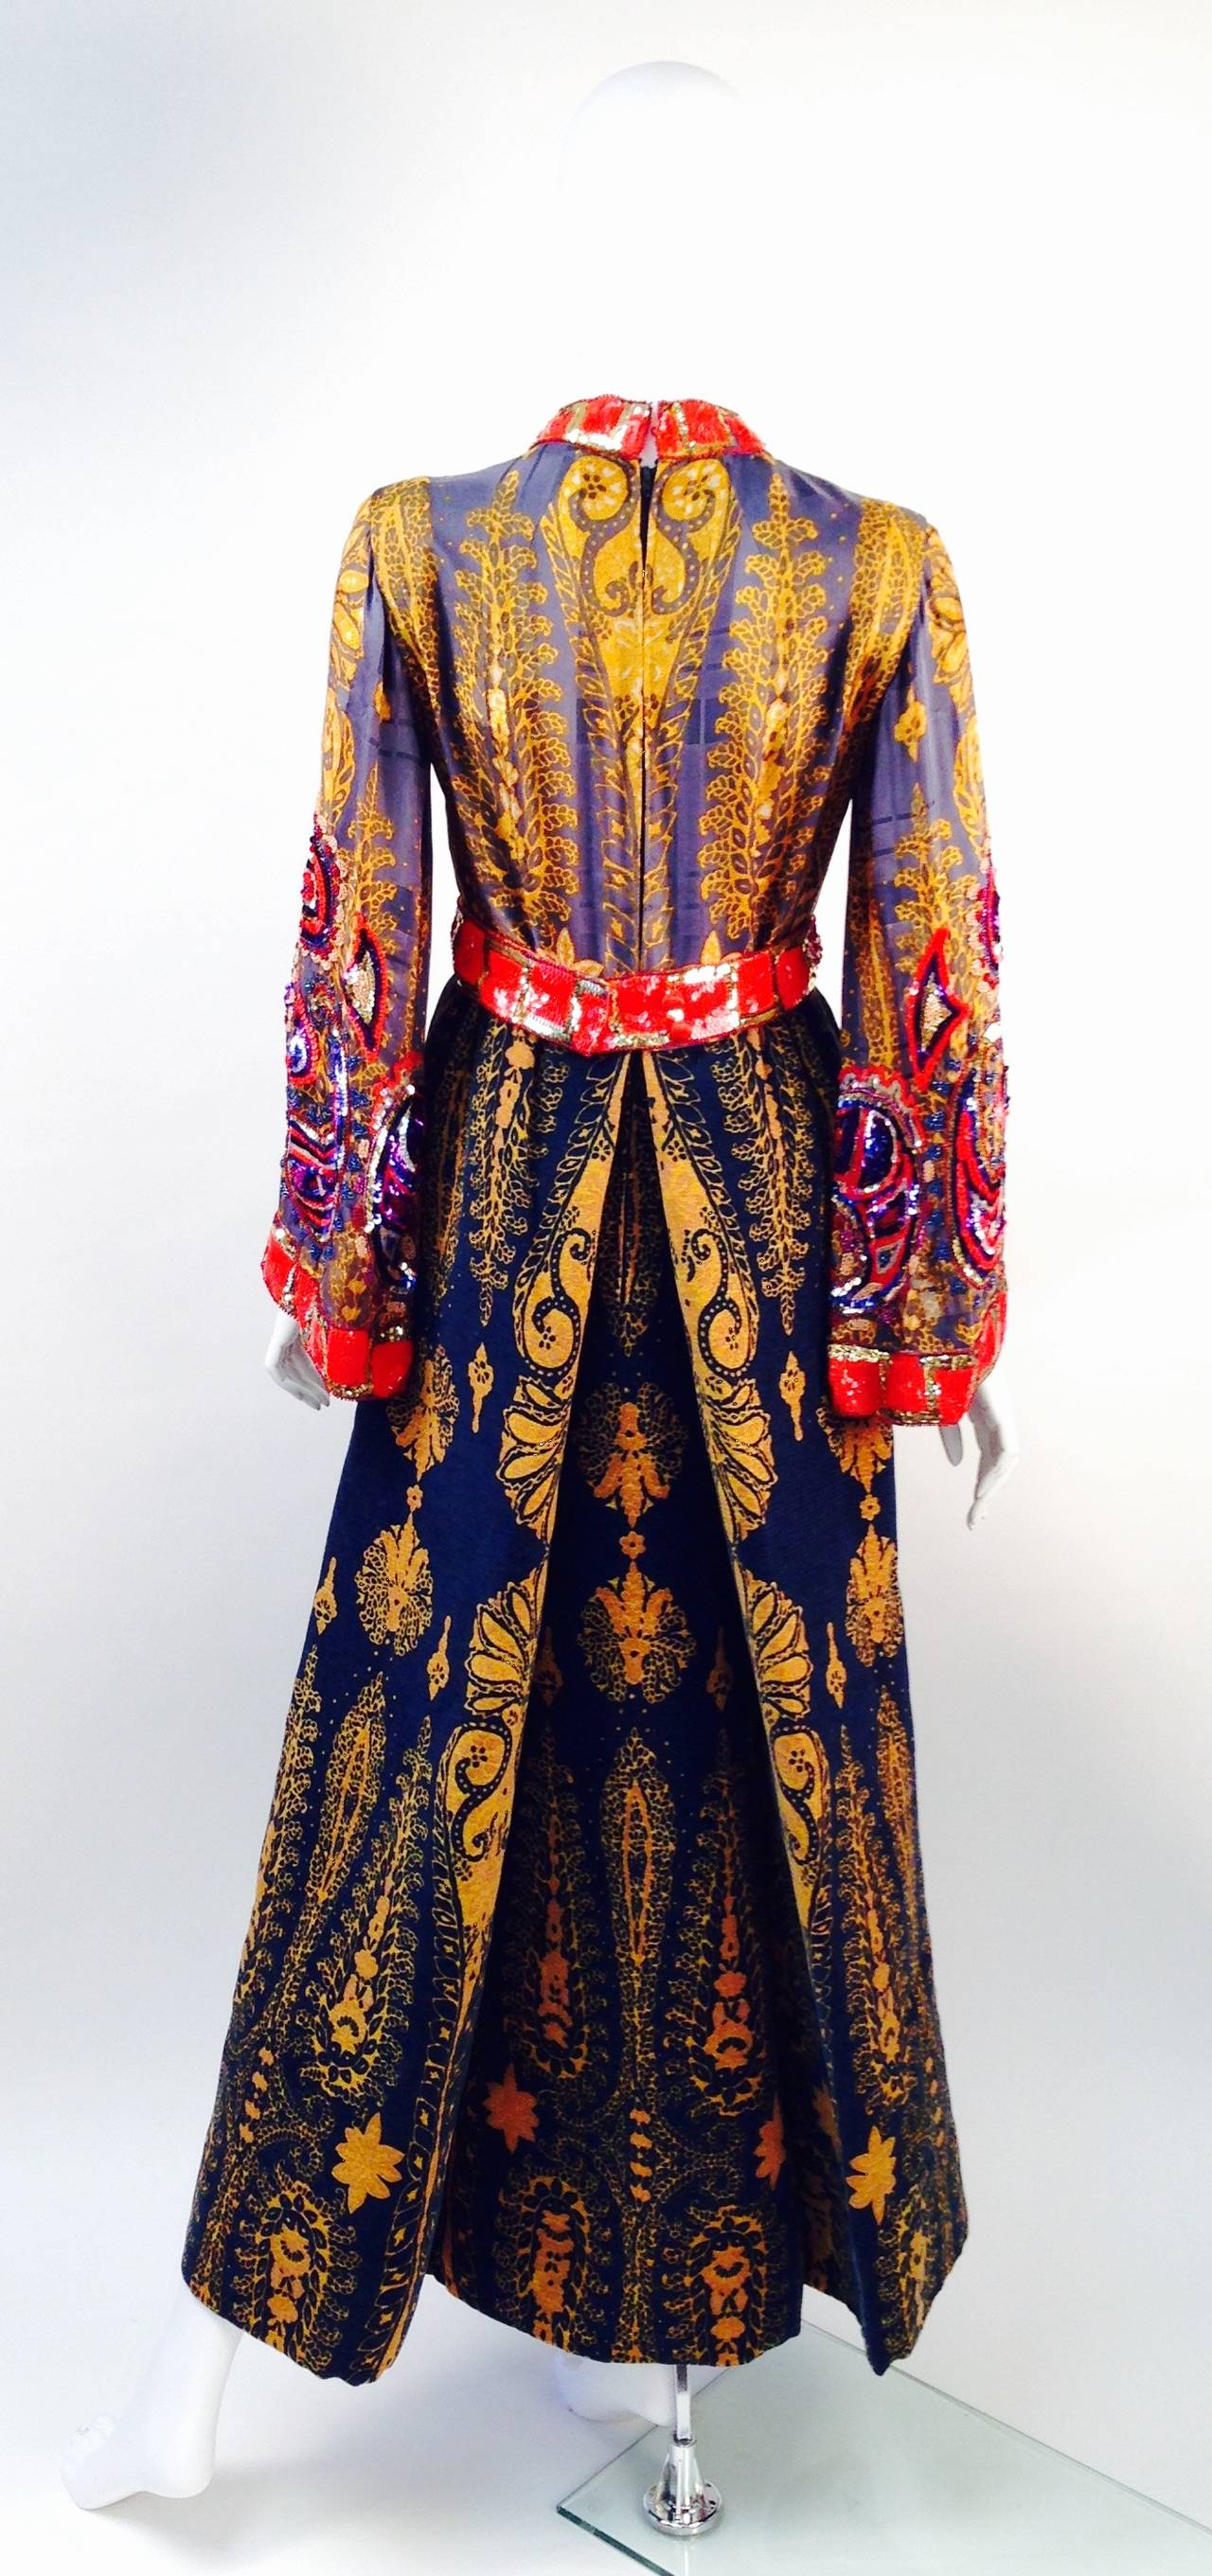 A perfect trifecta of textile print design, textures, and simple shape -- uber creative Ronald Amey does it again with this unbelievable dress!!!  Somehow, this brilliant designer was able to create eccentric design, but never too much.  The gown